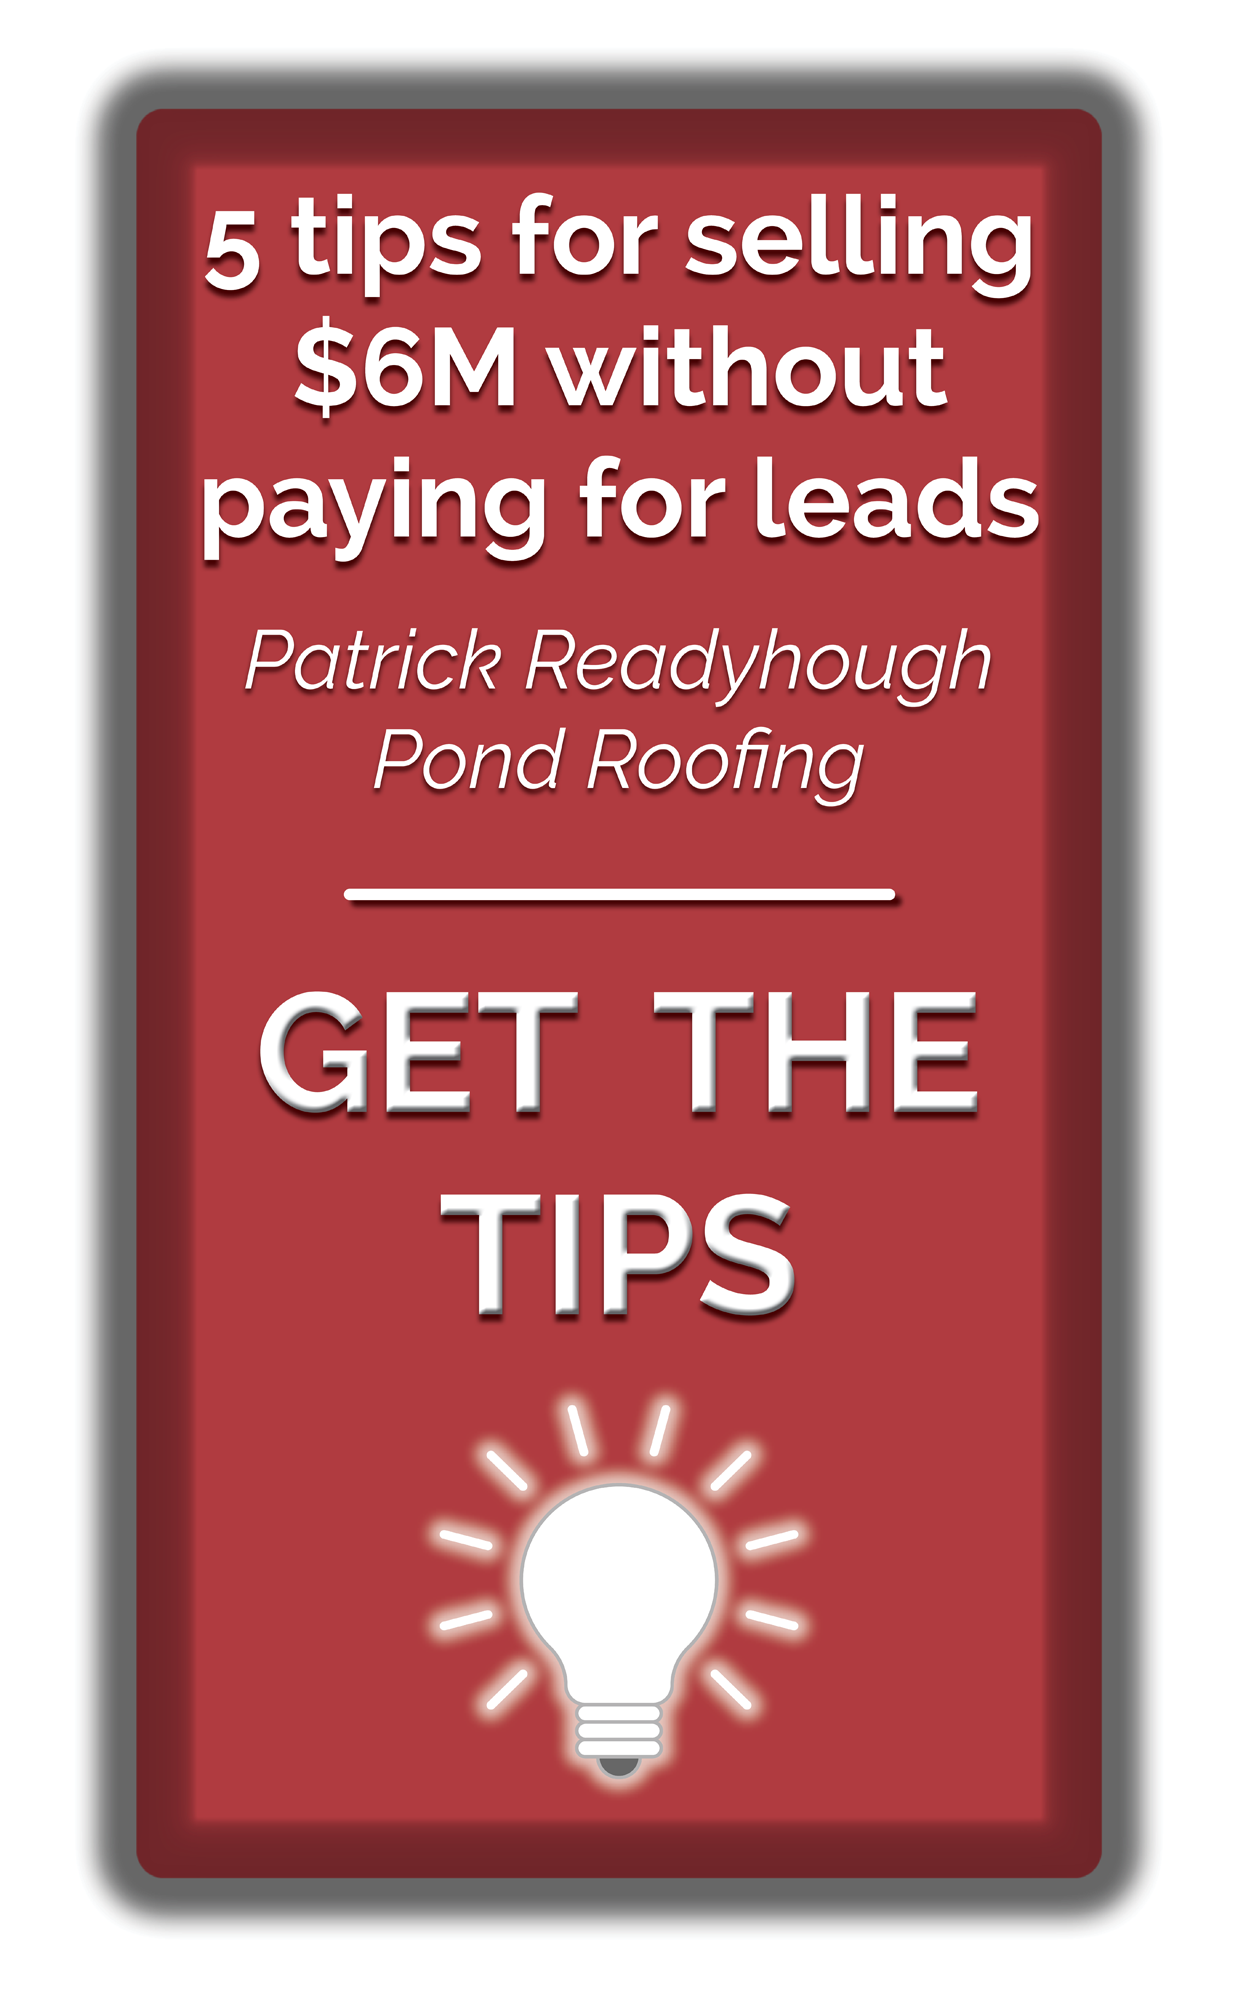 Get-The-Tips-Patrick-Readyhough-Button